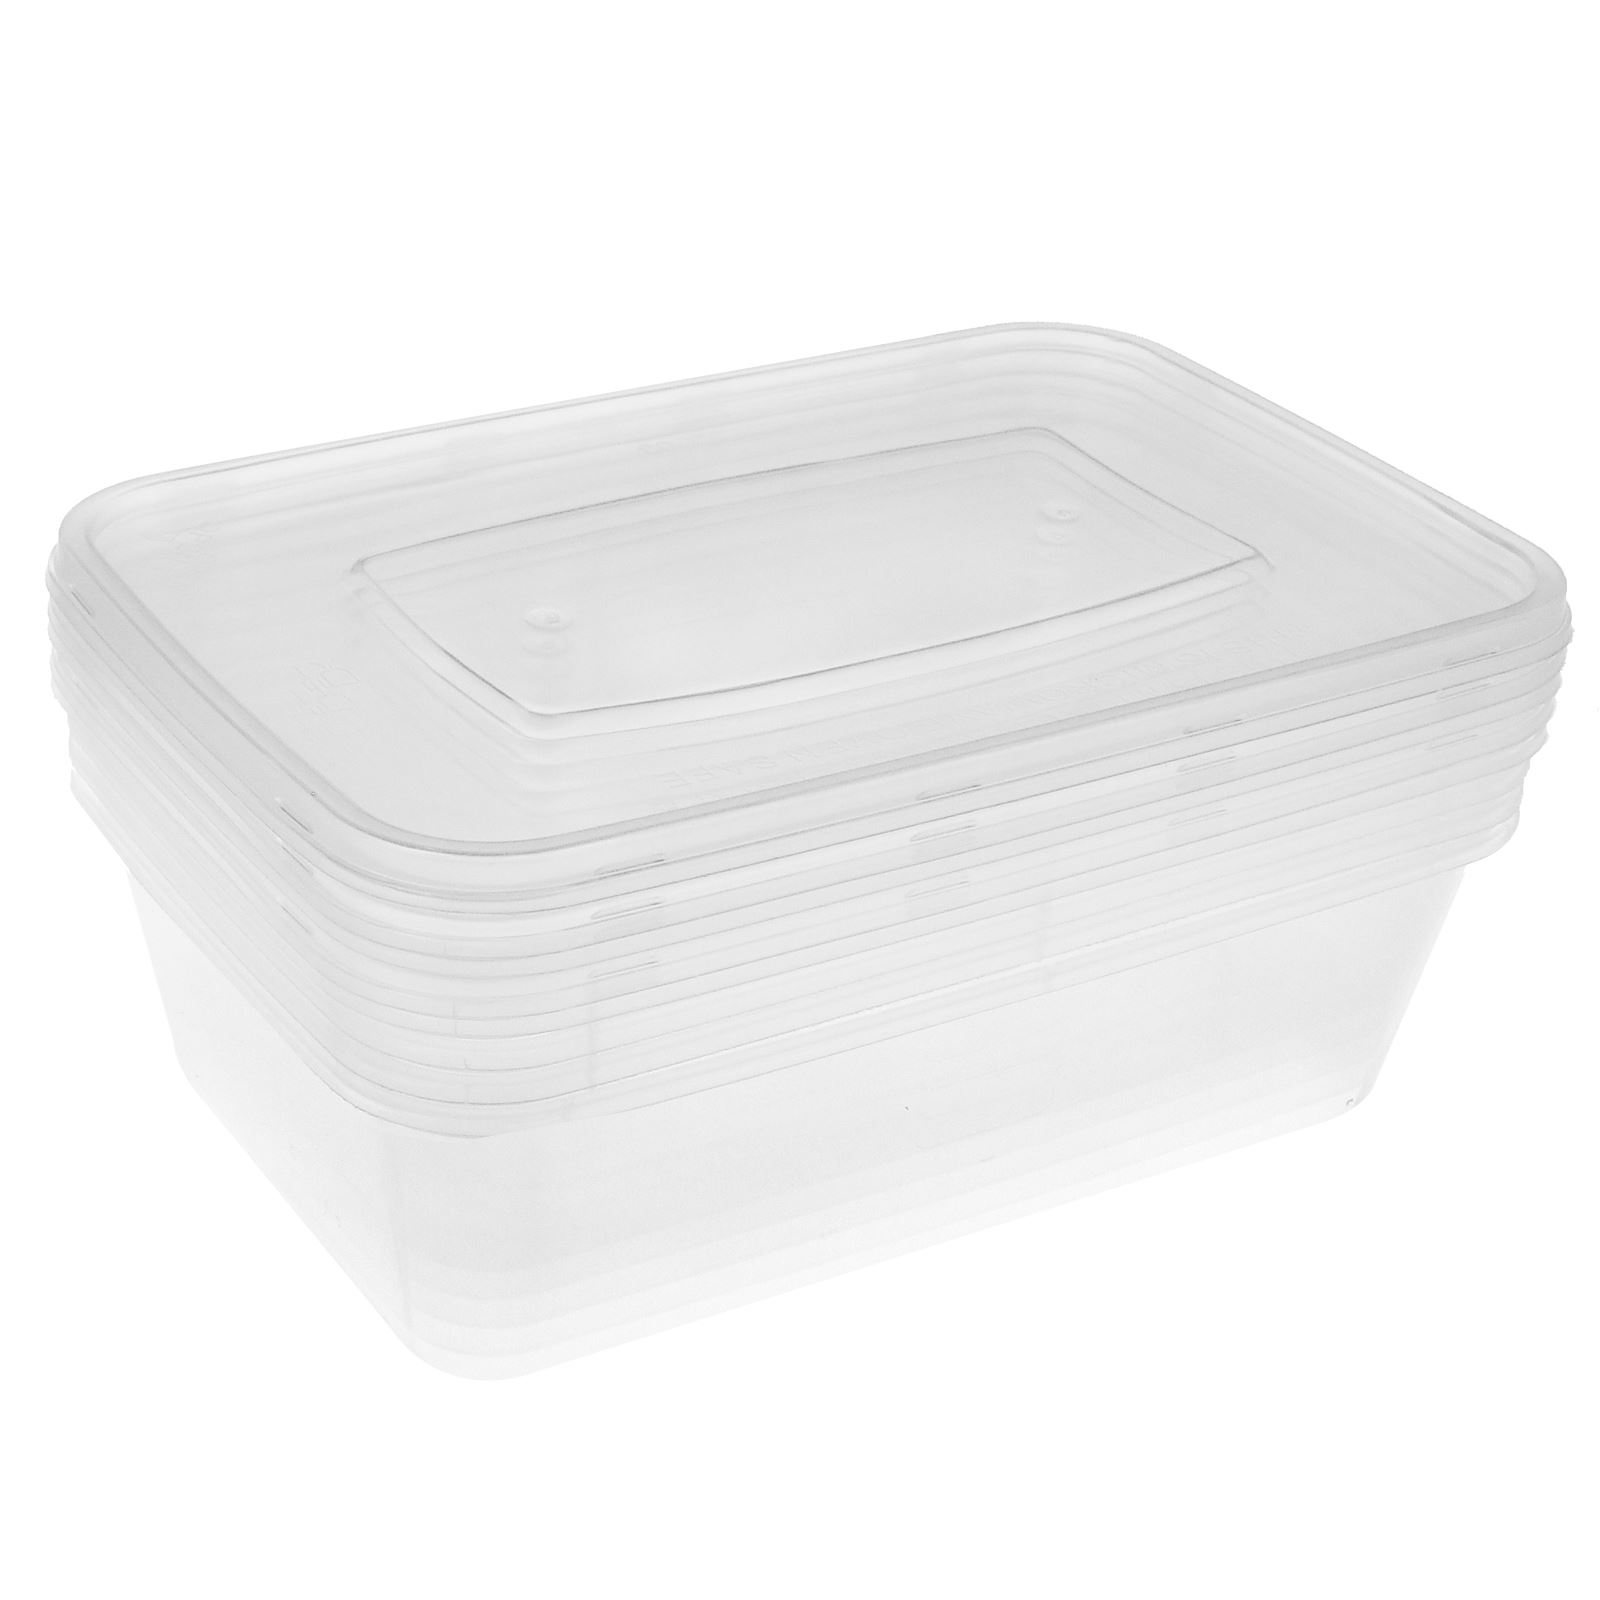 small clear plastic food storage containers with lids meal. Black Bedroom Furniture Sets. Home Design Ideas